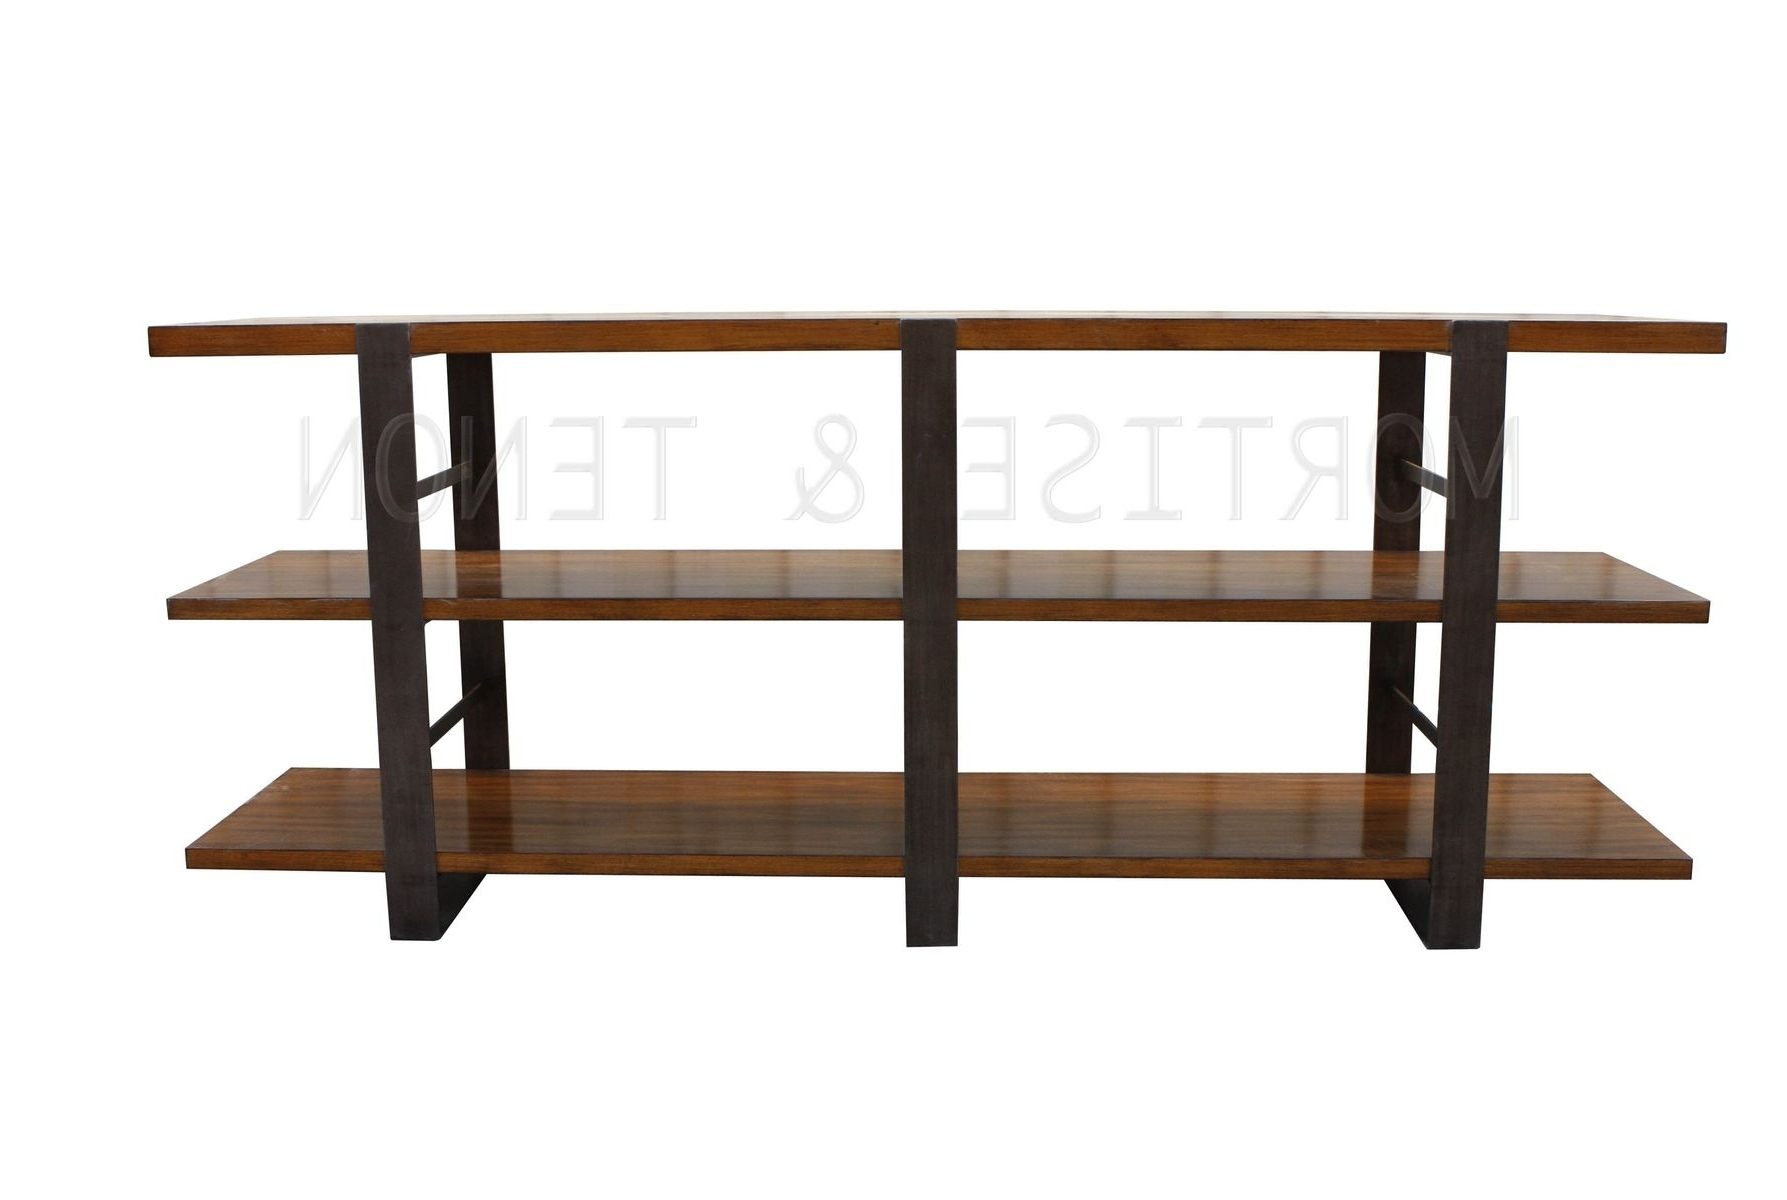 Hand Crafted Reclaimed Wood & Metal Bookcasemortise & Tenon Regarding Most Recent Reclaimed Wood Bookcases (View 9 of 15)